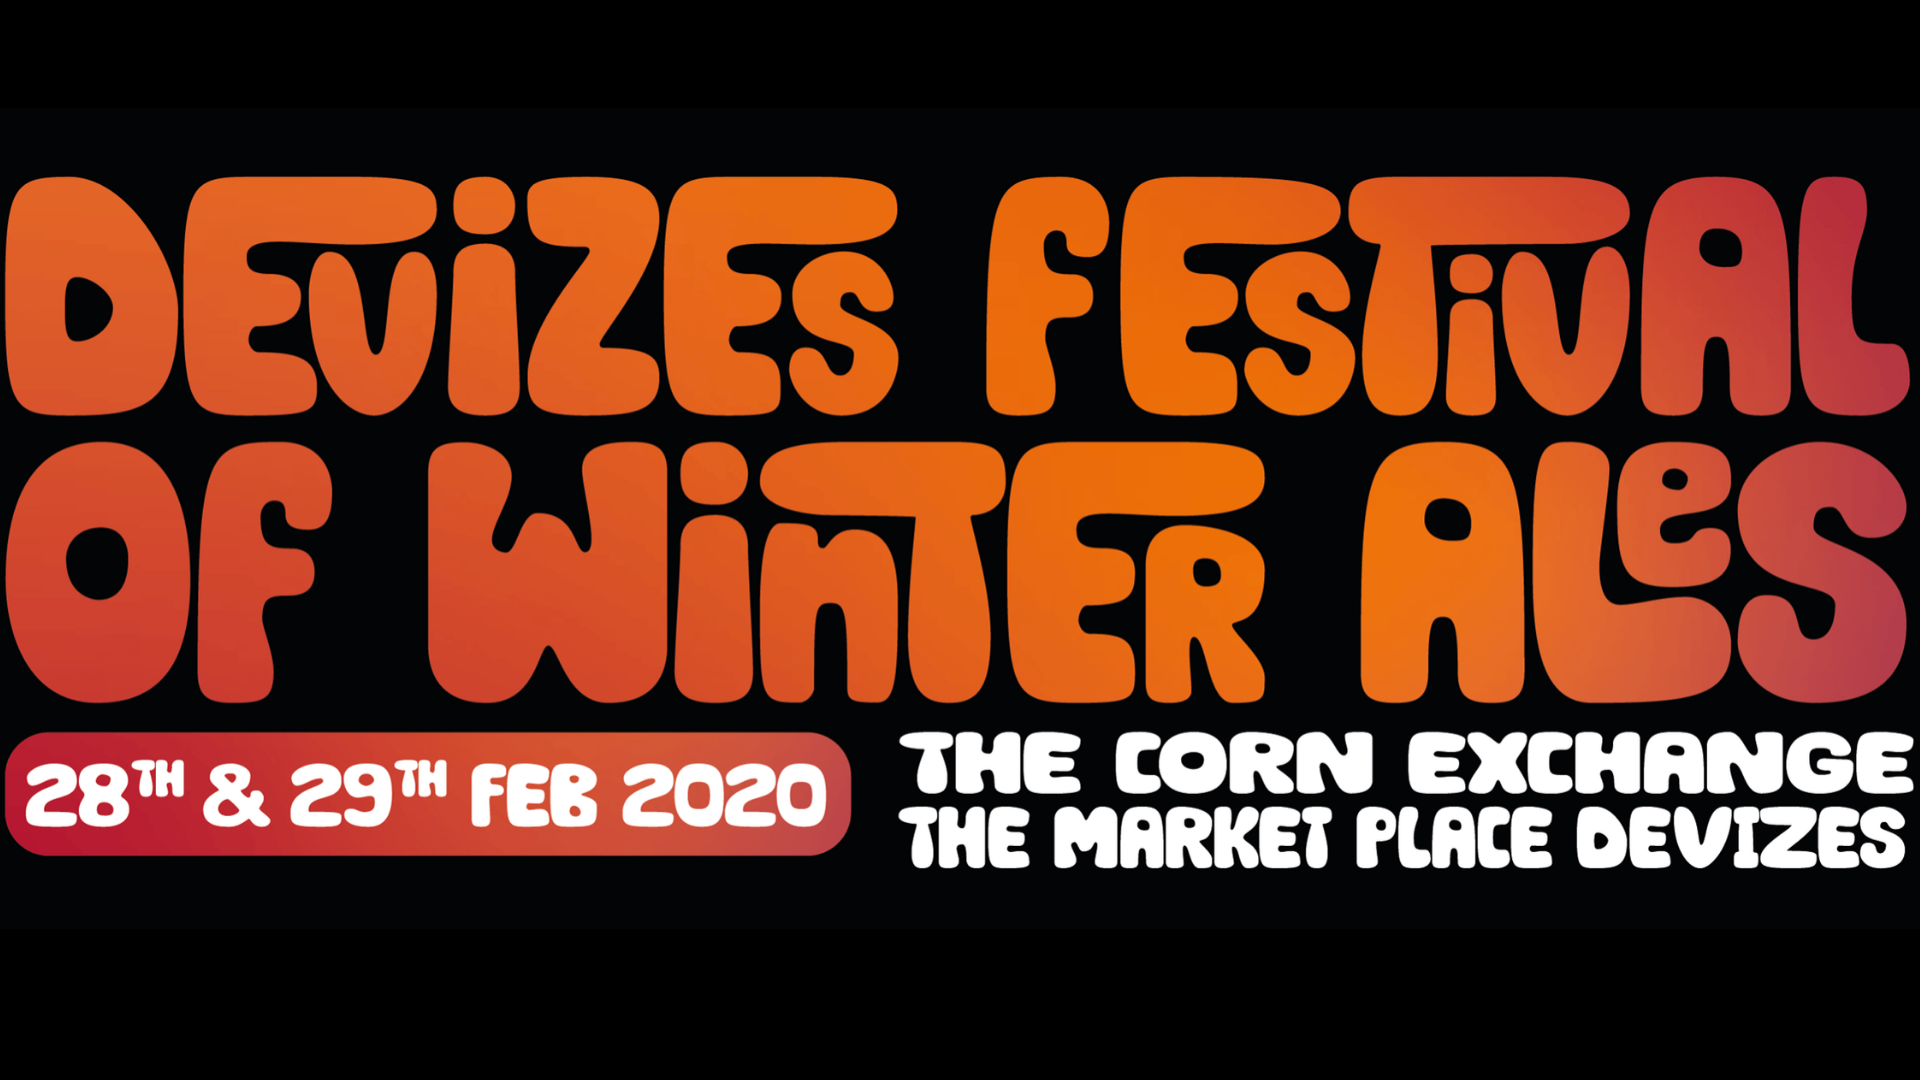 Devizes Festival of Winter Ales 2020